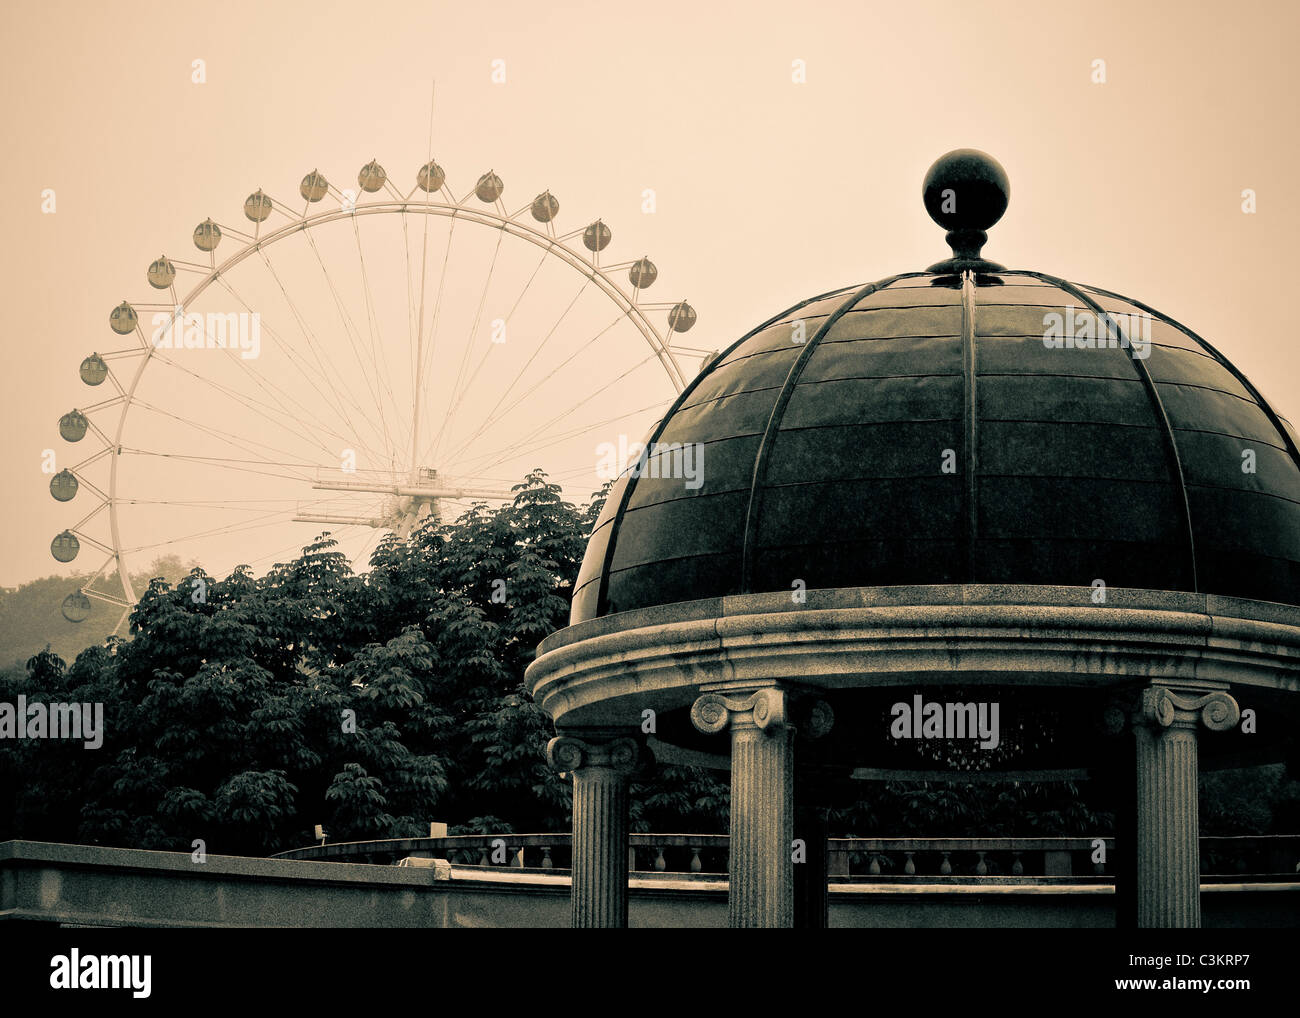 Antiqued effect on a columned pagoda and ferris wheel, off in the distance. - Stock Image